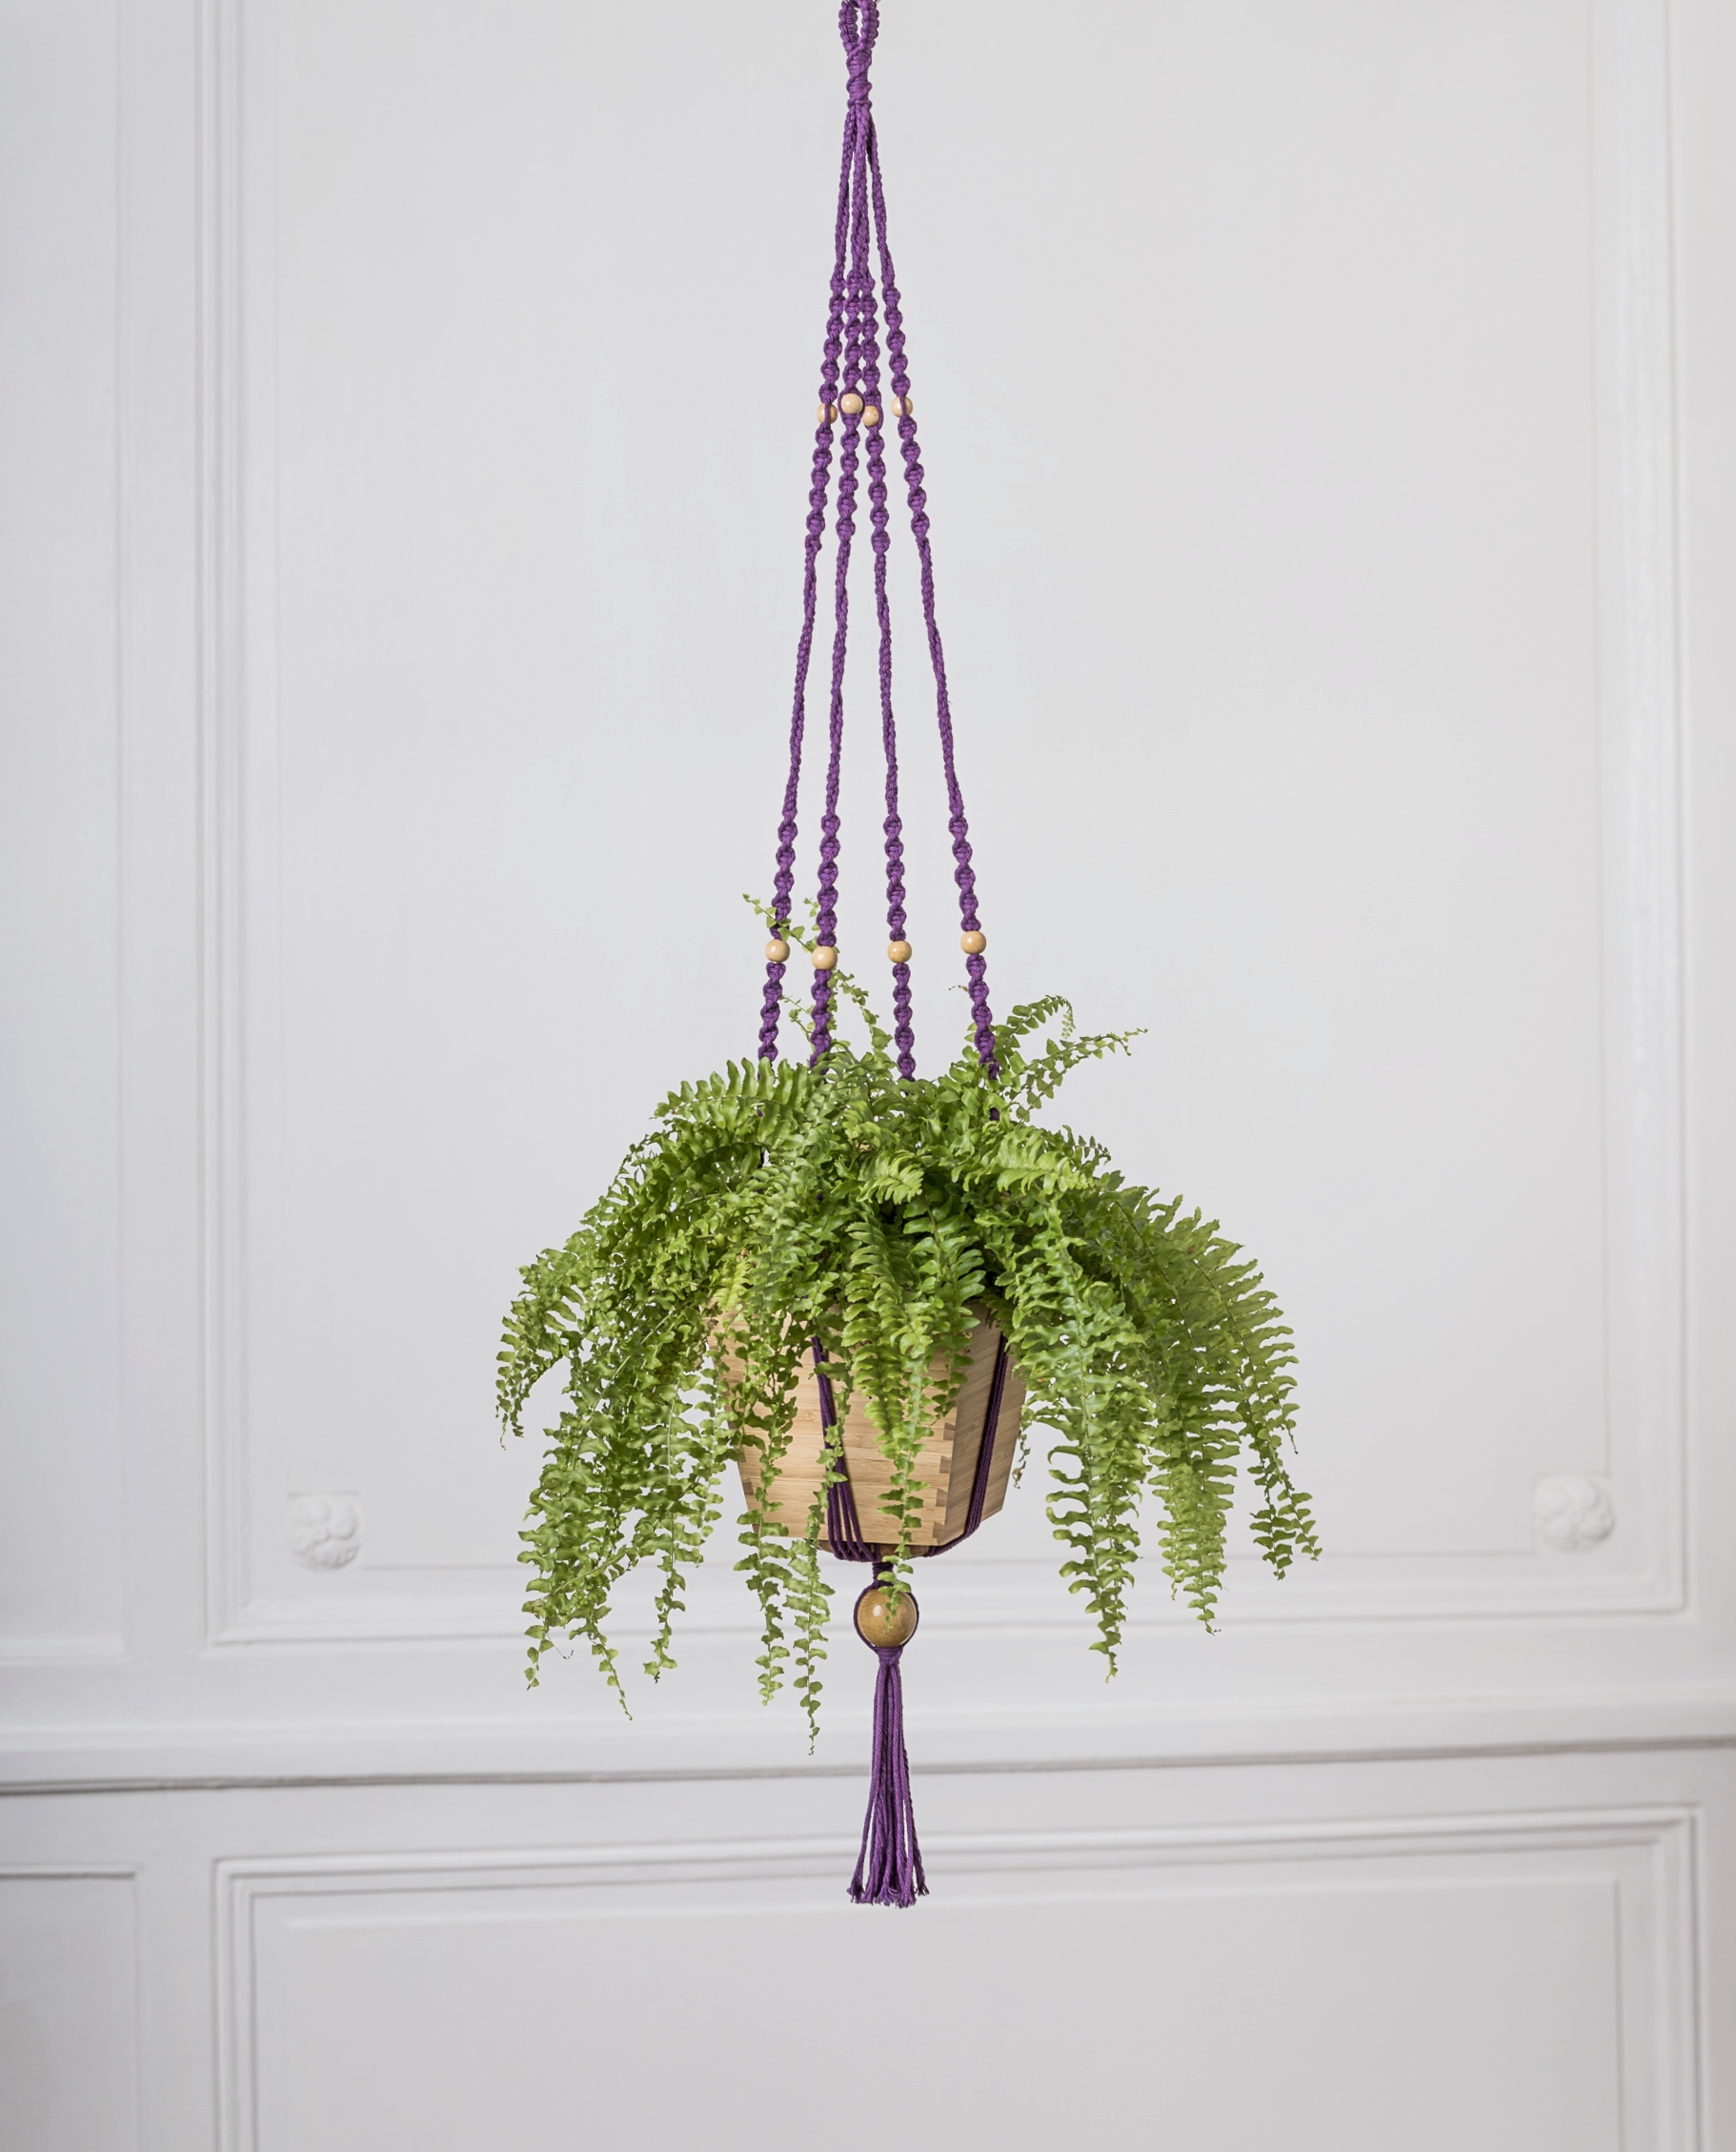 Suspension pour plante en macram bymadjo tynka d co for Suspension pour plante interieur